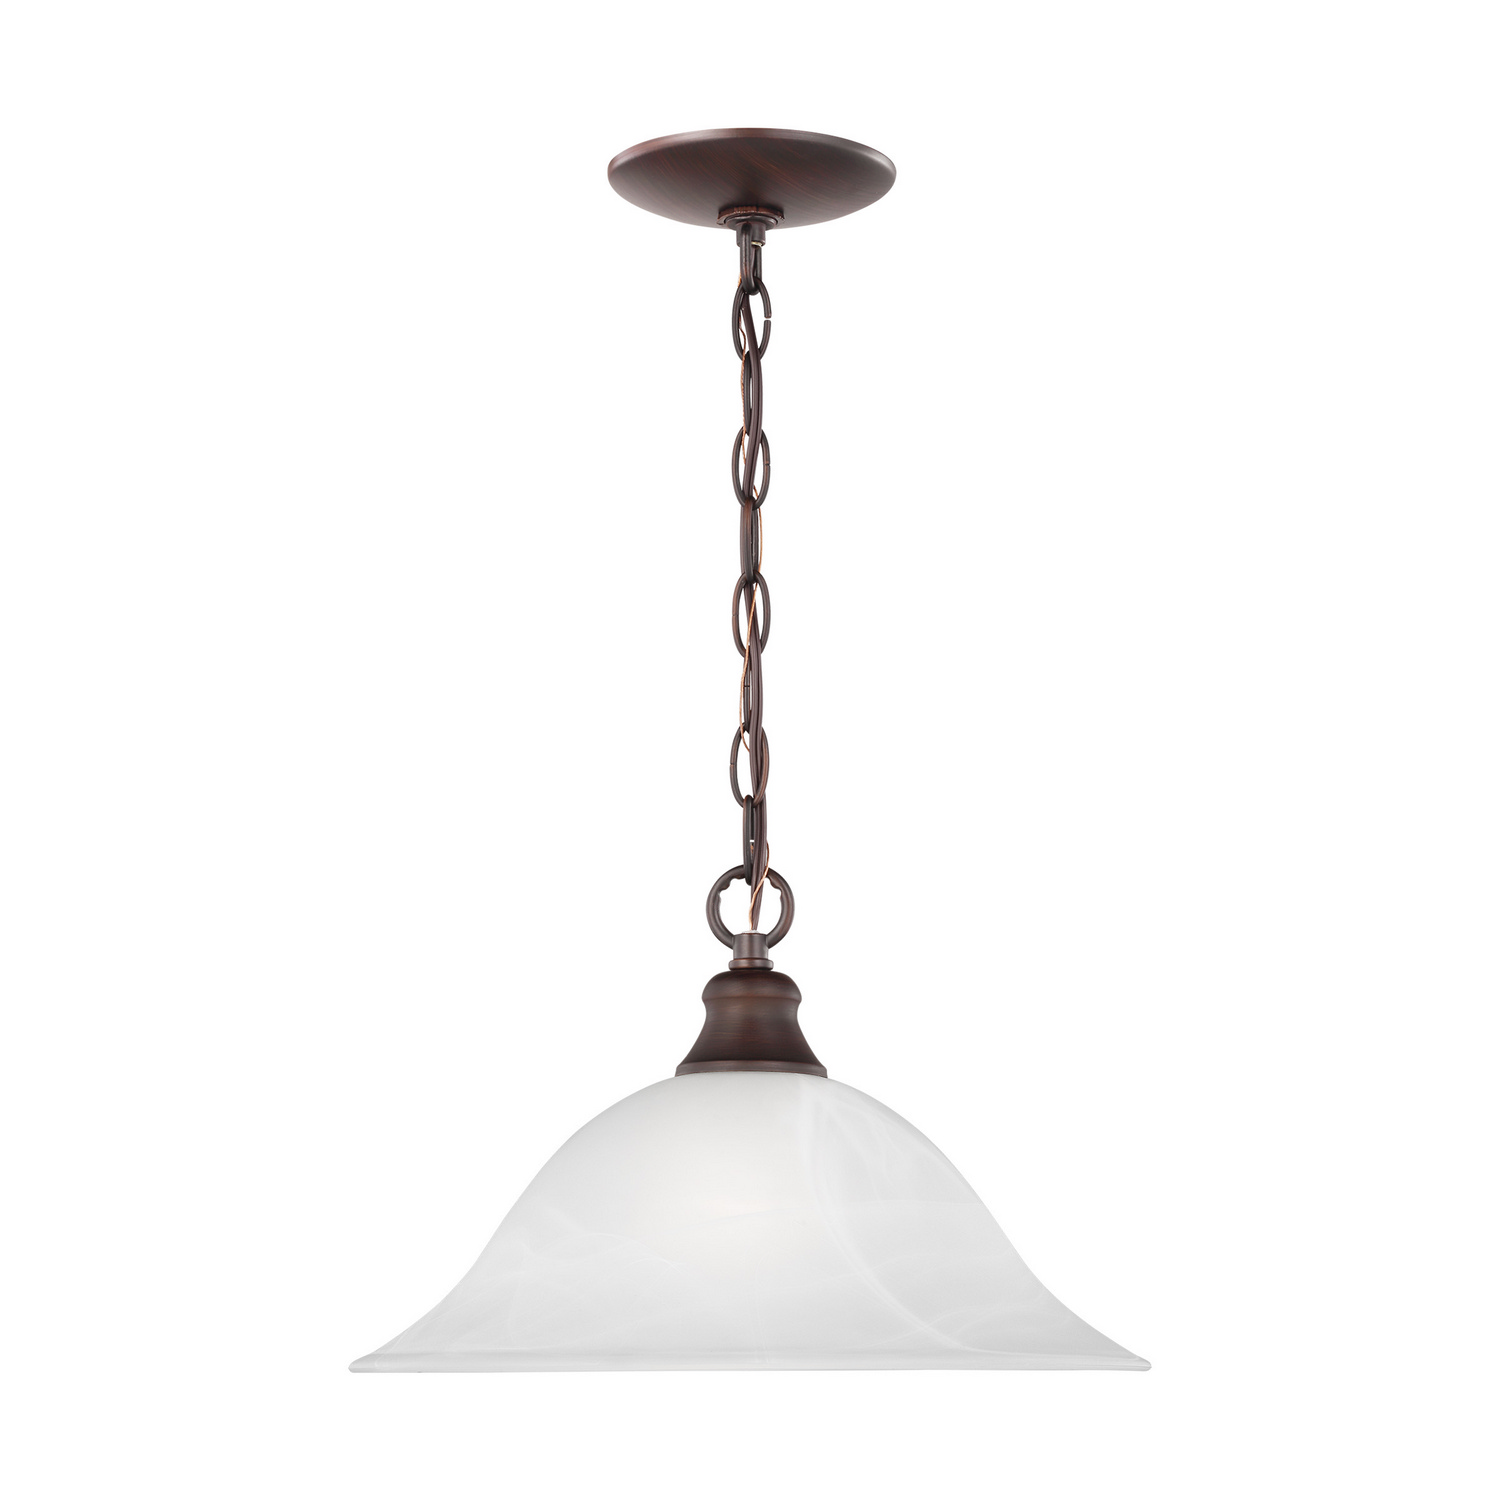 nine light chandelier from the oslo collection by seagull canada 31162en3 962